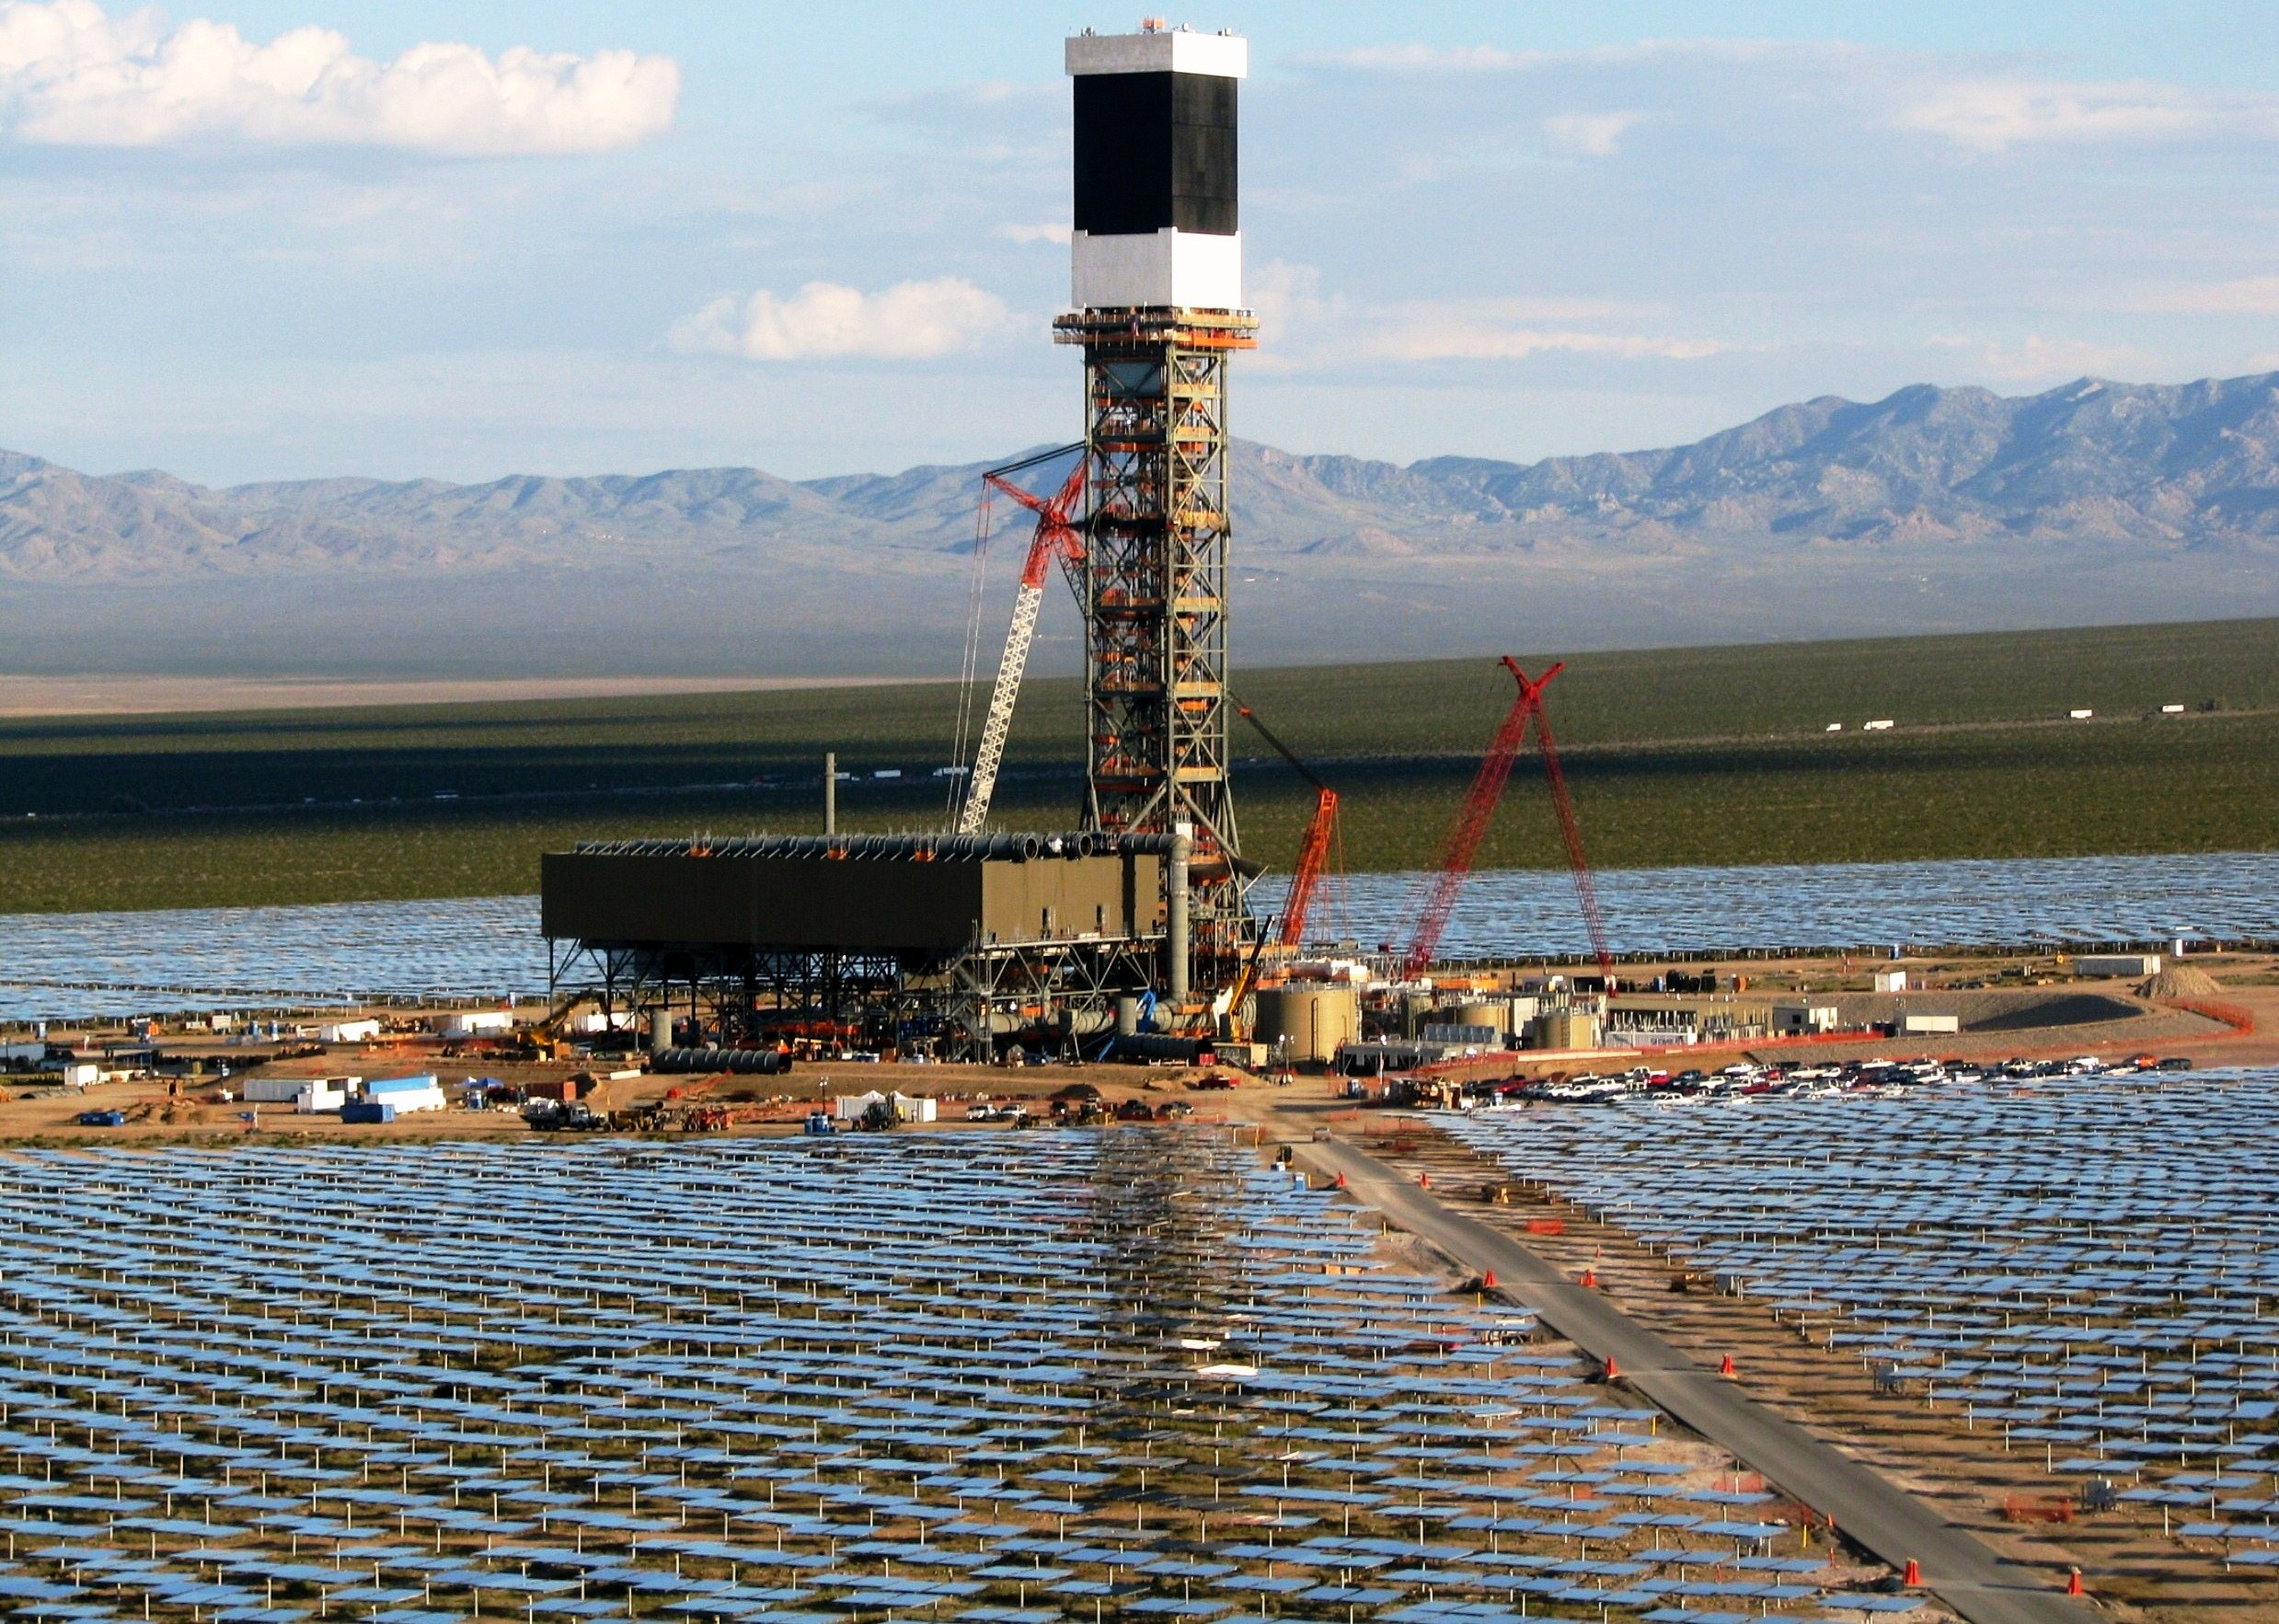 BrightSource's Ivanph solar project in California, first large-scale solar therm